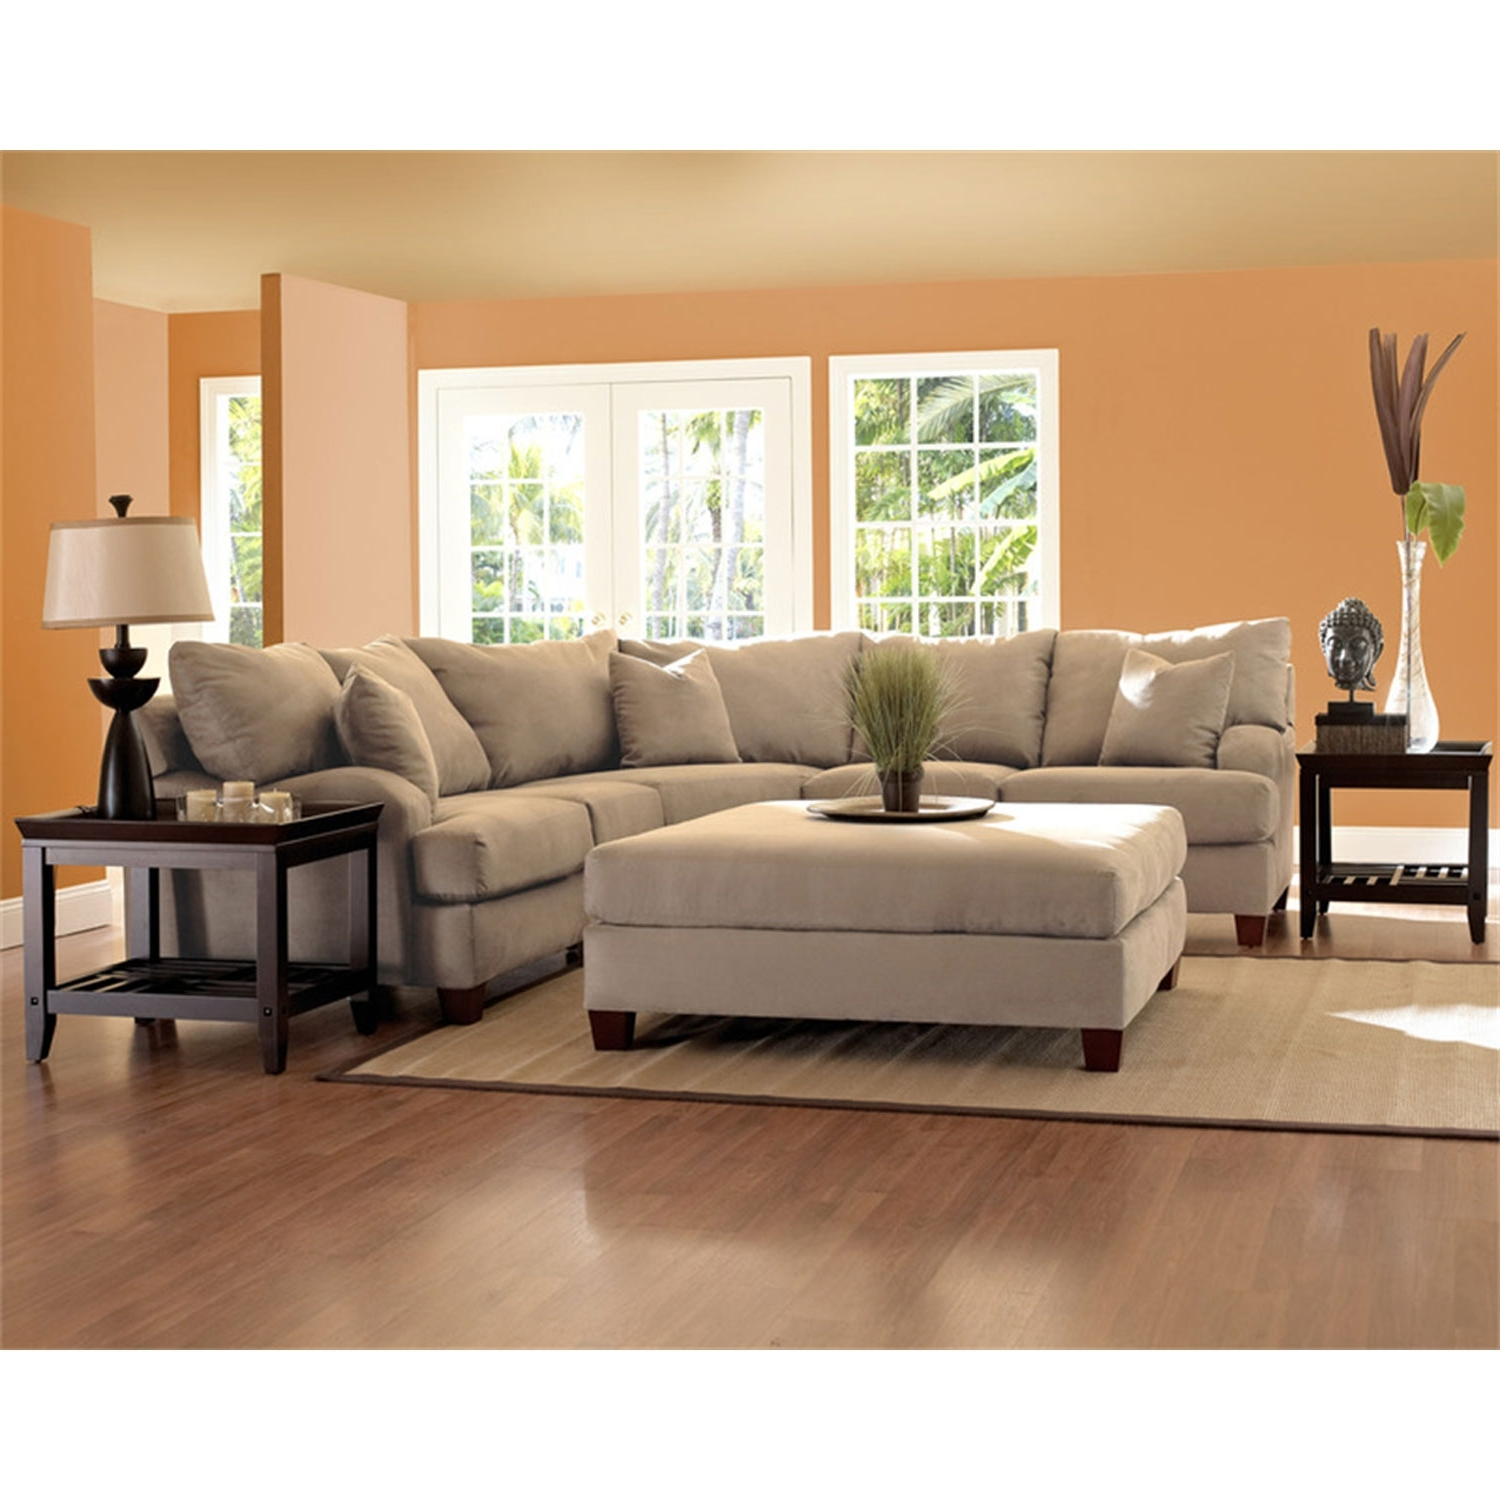 Preferred Beige Sectional Sofas With Canyon Beige Sectional Sectional Sofas Sofas & Sectionals Living (View 14 of 15)